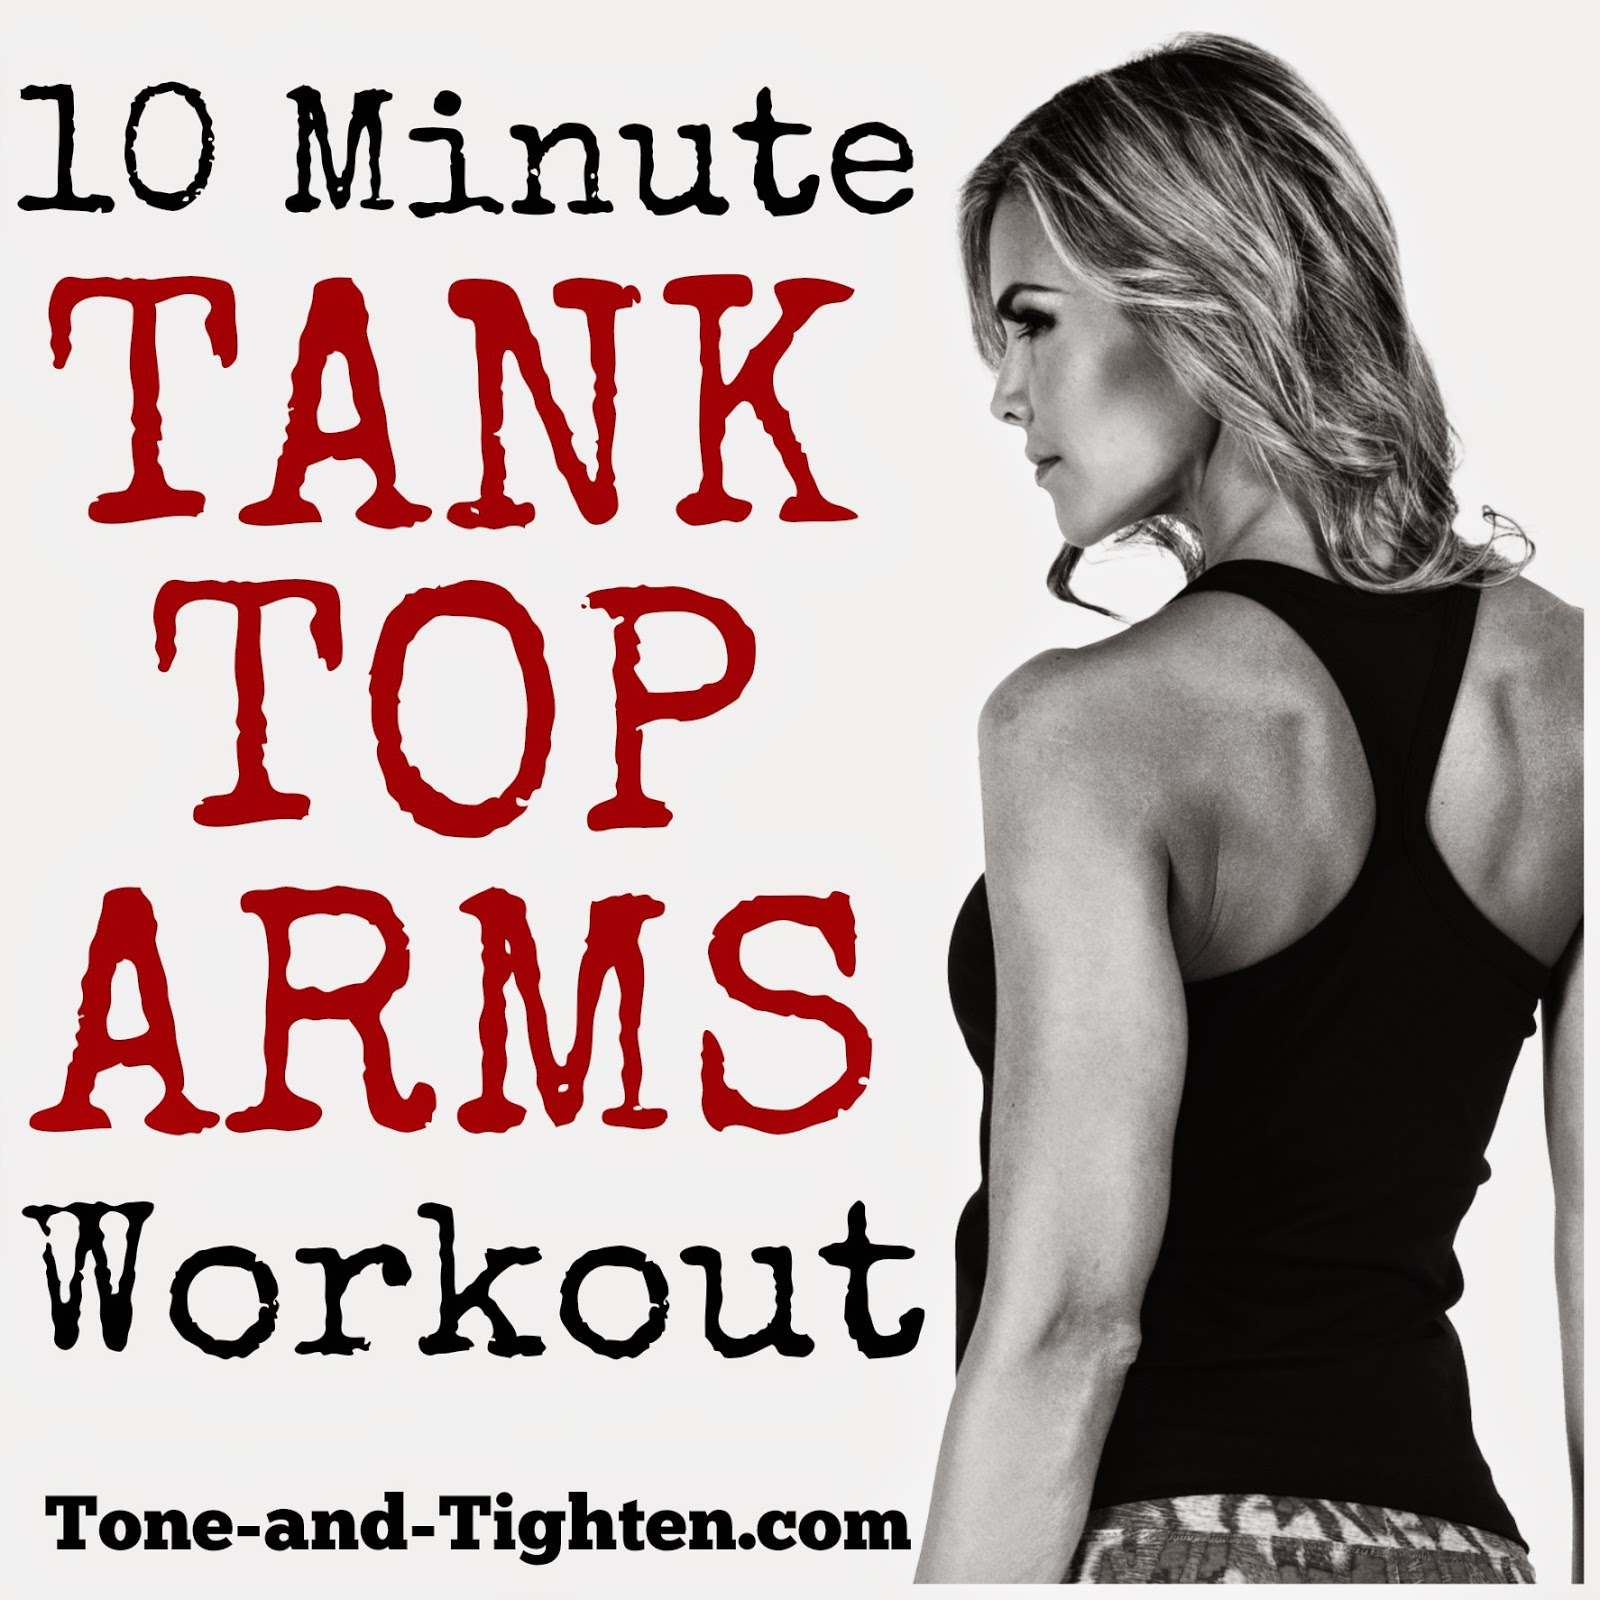 http://tone-and-tighten.com/2014/05/ten-minute-tank-top-arms-all-you-need-is-10-minutes-to-be-ready-to-go-sleeveless-this-summer.html